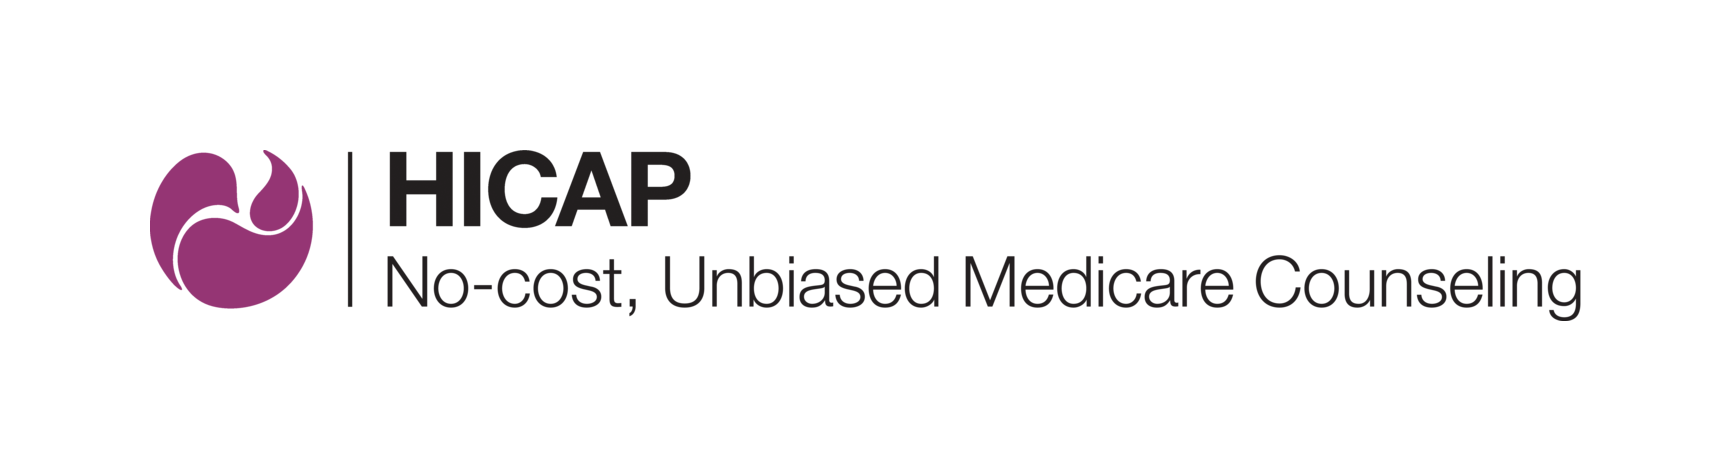 HICAP - Medicare Counseling